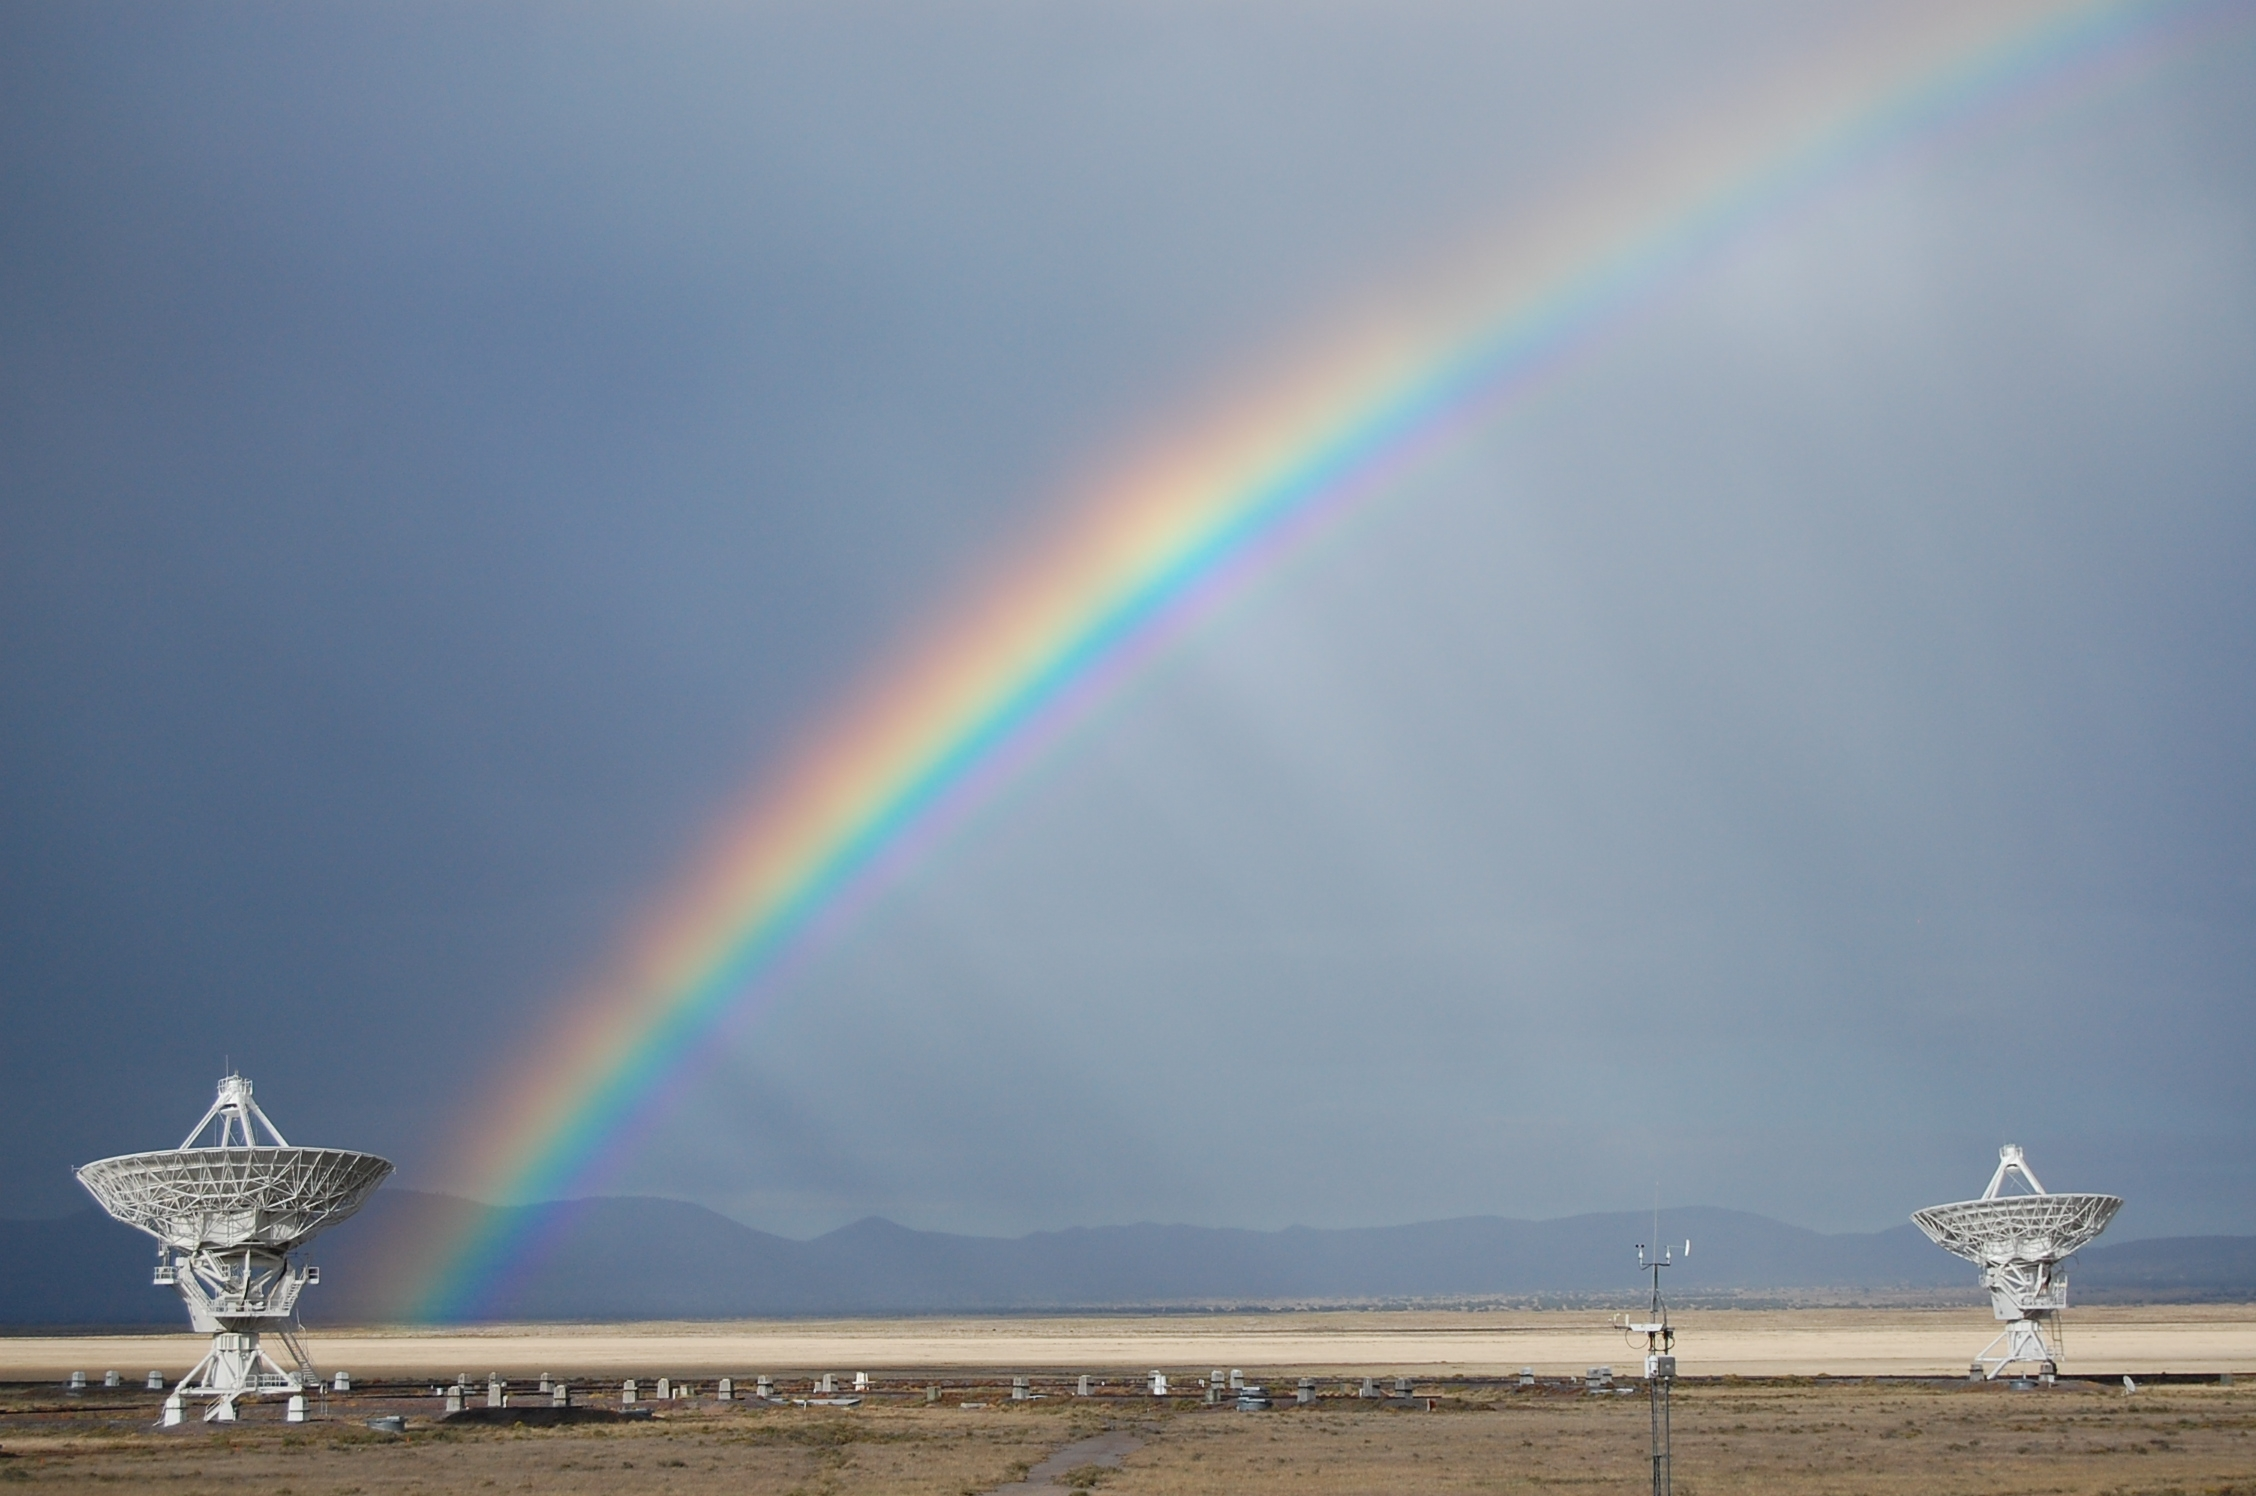 A photo of a rainbow over the VLA telescope in the desert.